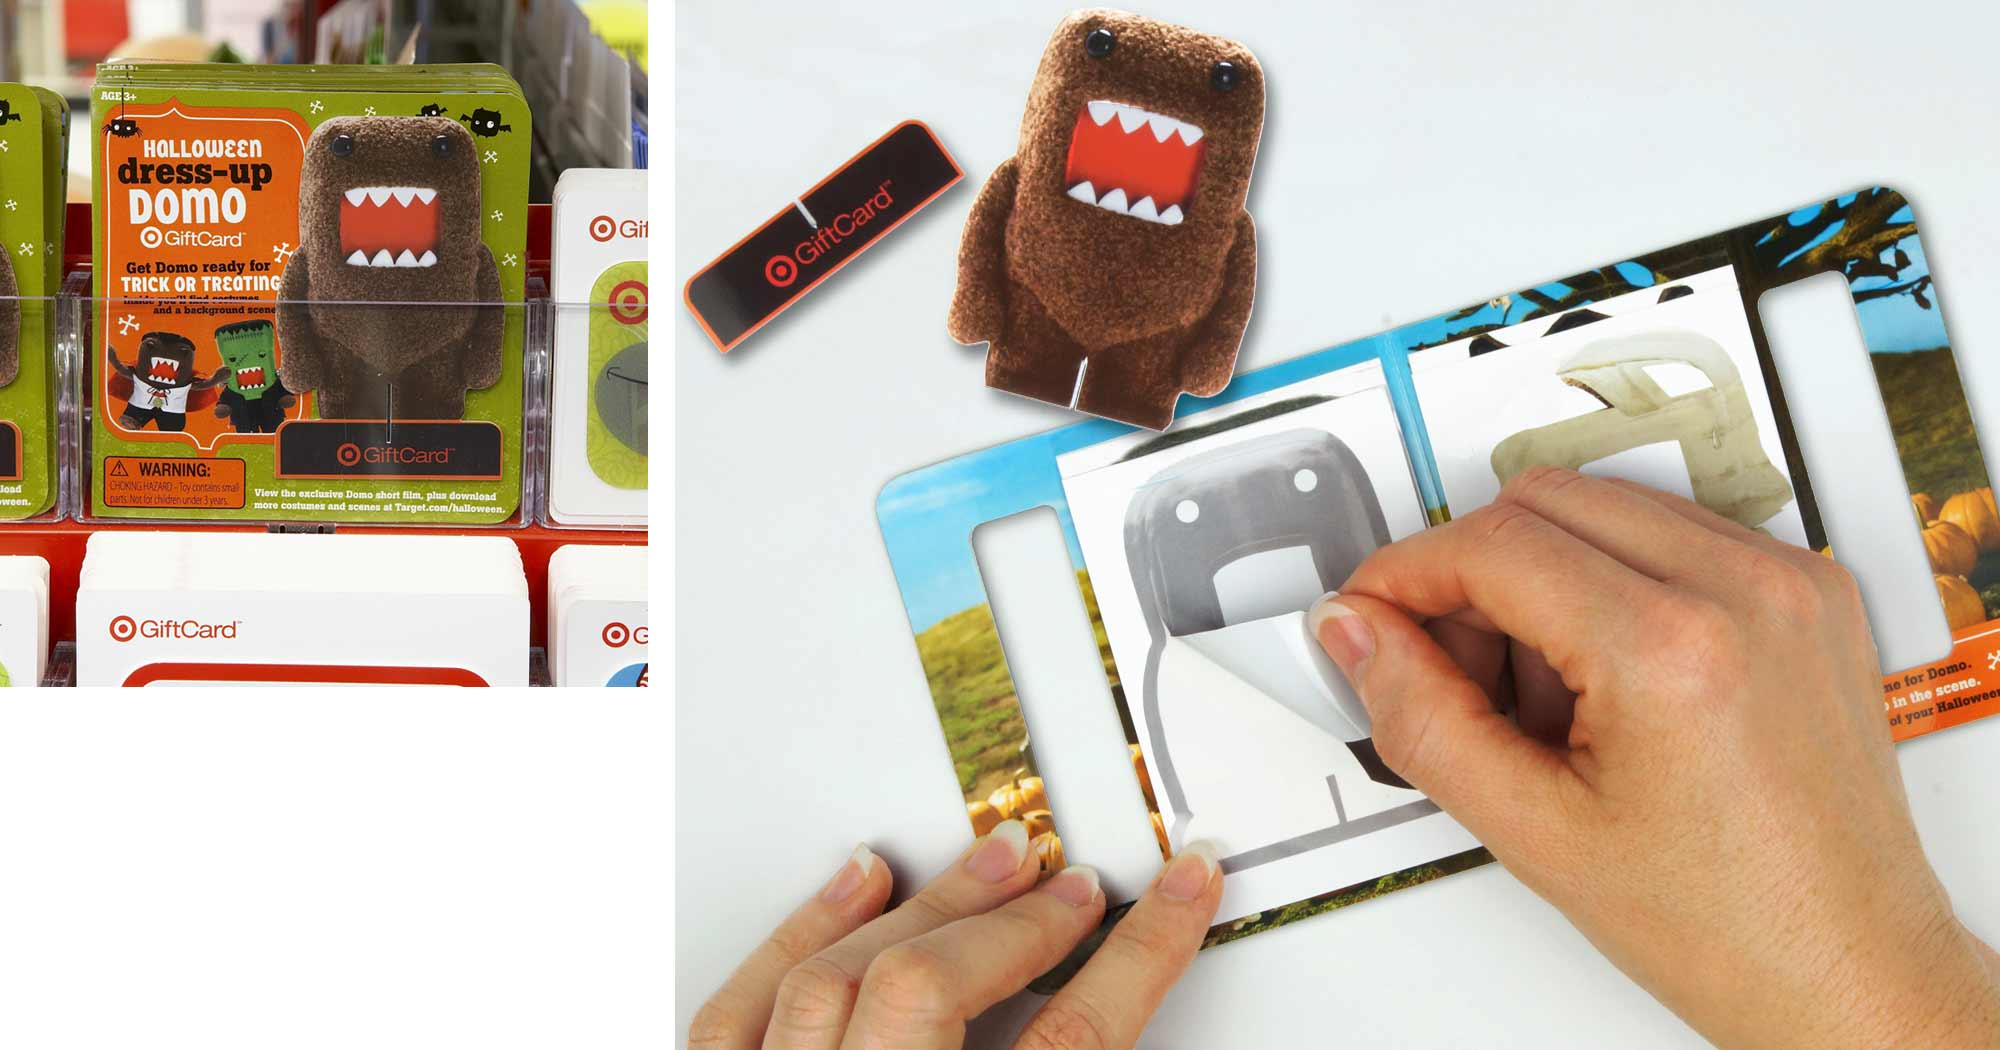 Domo GiftCard